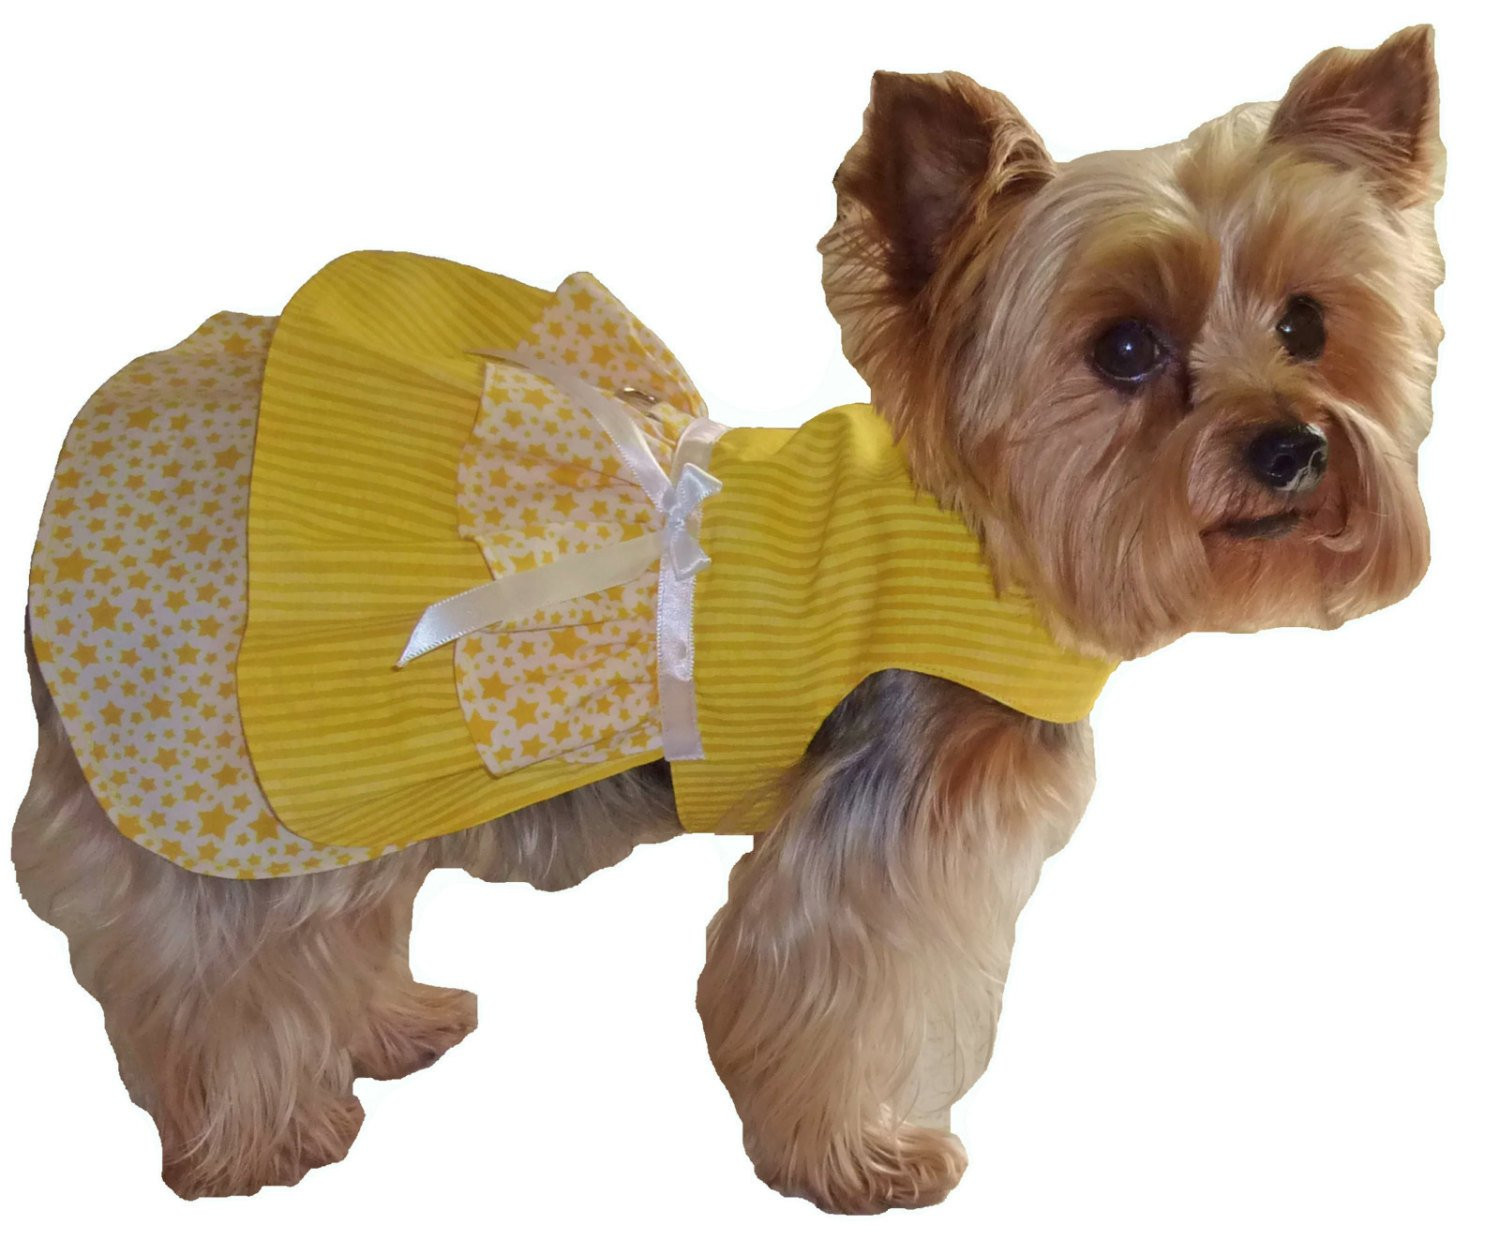 Small Dog Clothes Patterns Elegant Small Dog Harness Coat Small Get Free Image About Wiring Of Contemporary 43 Ideas Small Dog Clothes Patterns